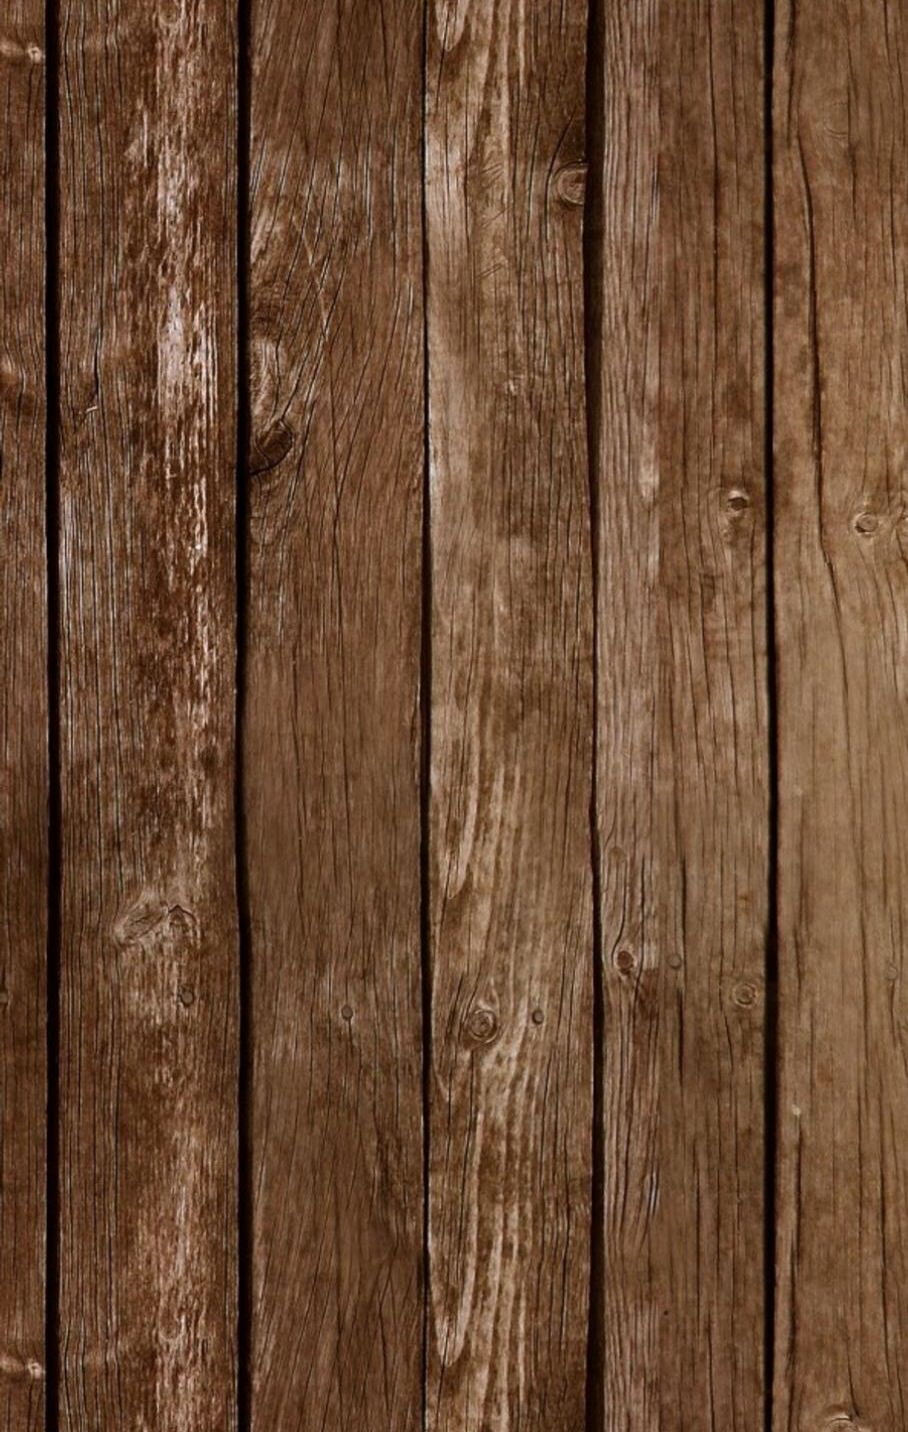 Wood iphone wallpaper | iPhone wallpapers | Pinterest | Bois, Texture bois et Titi